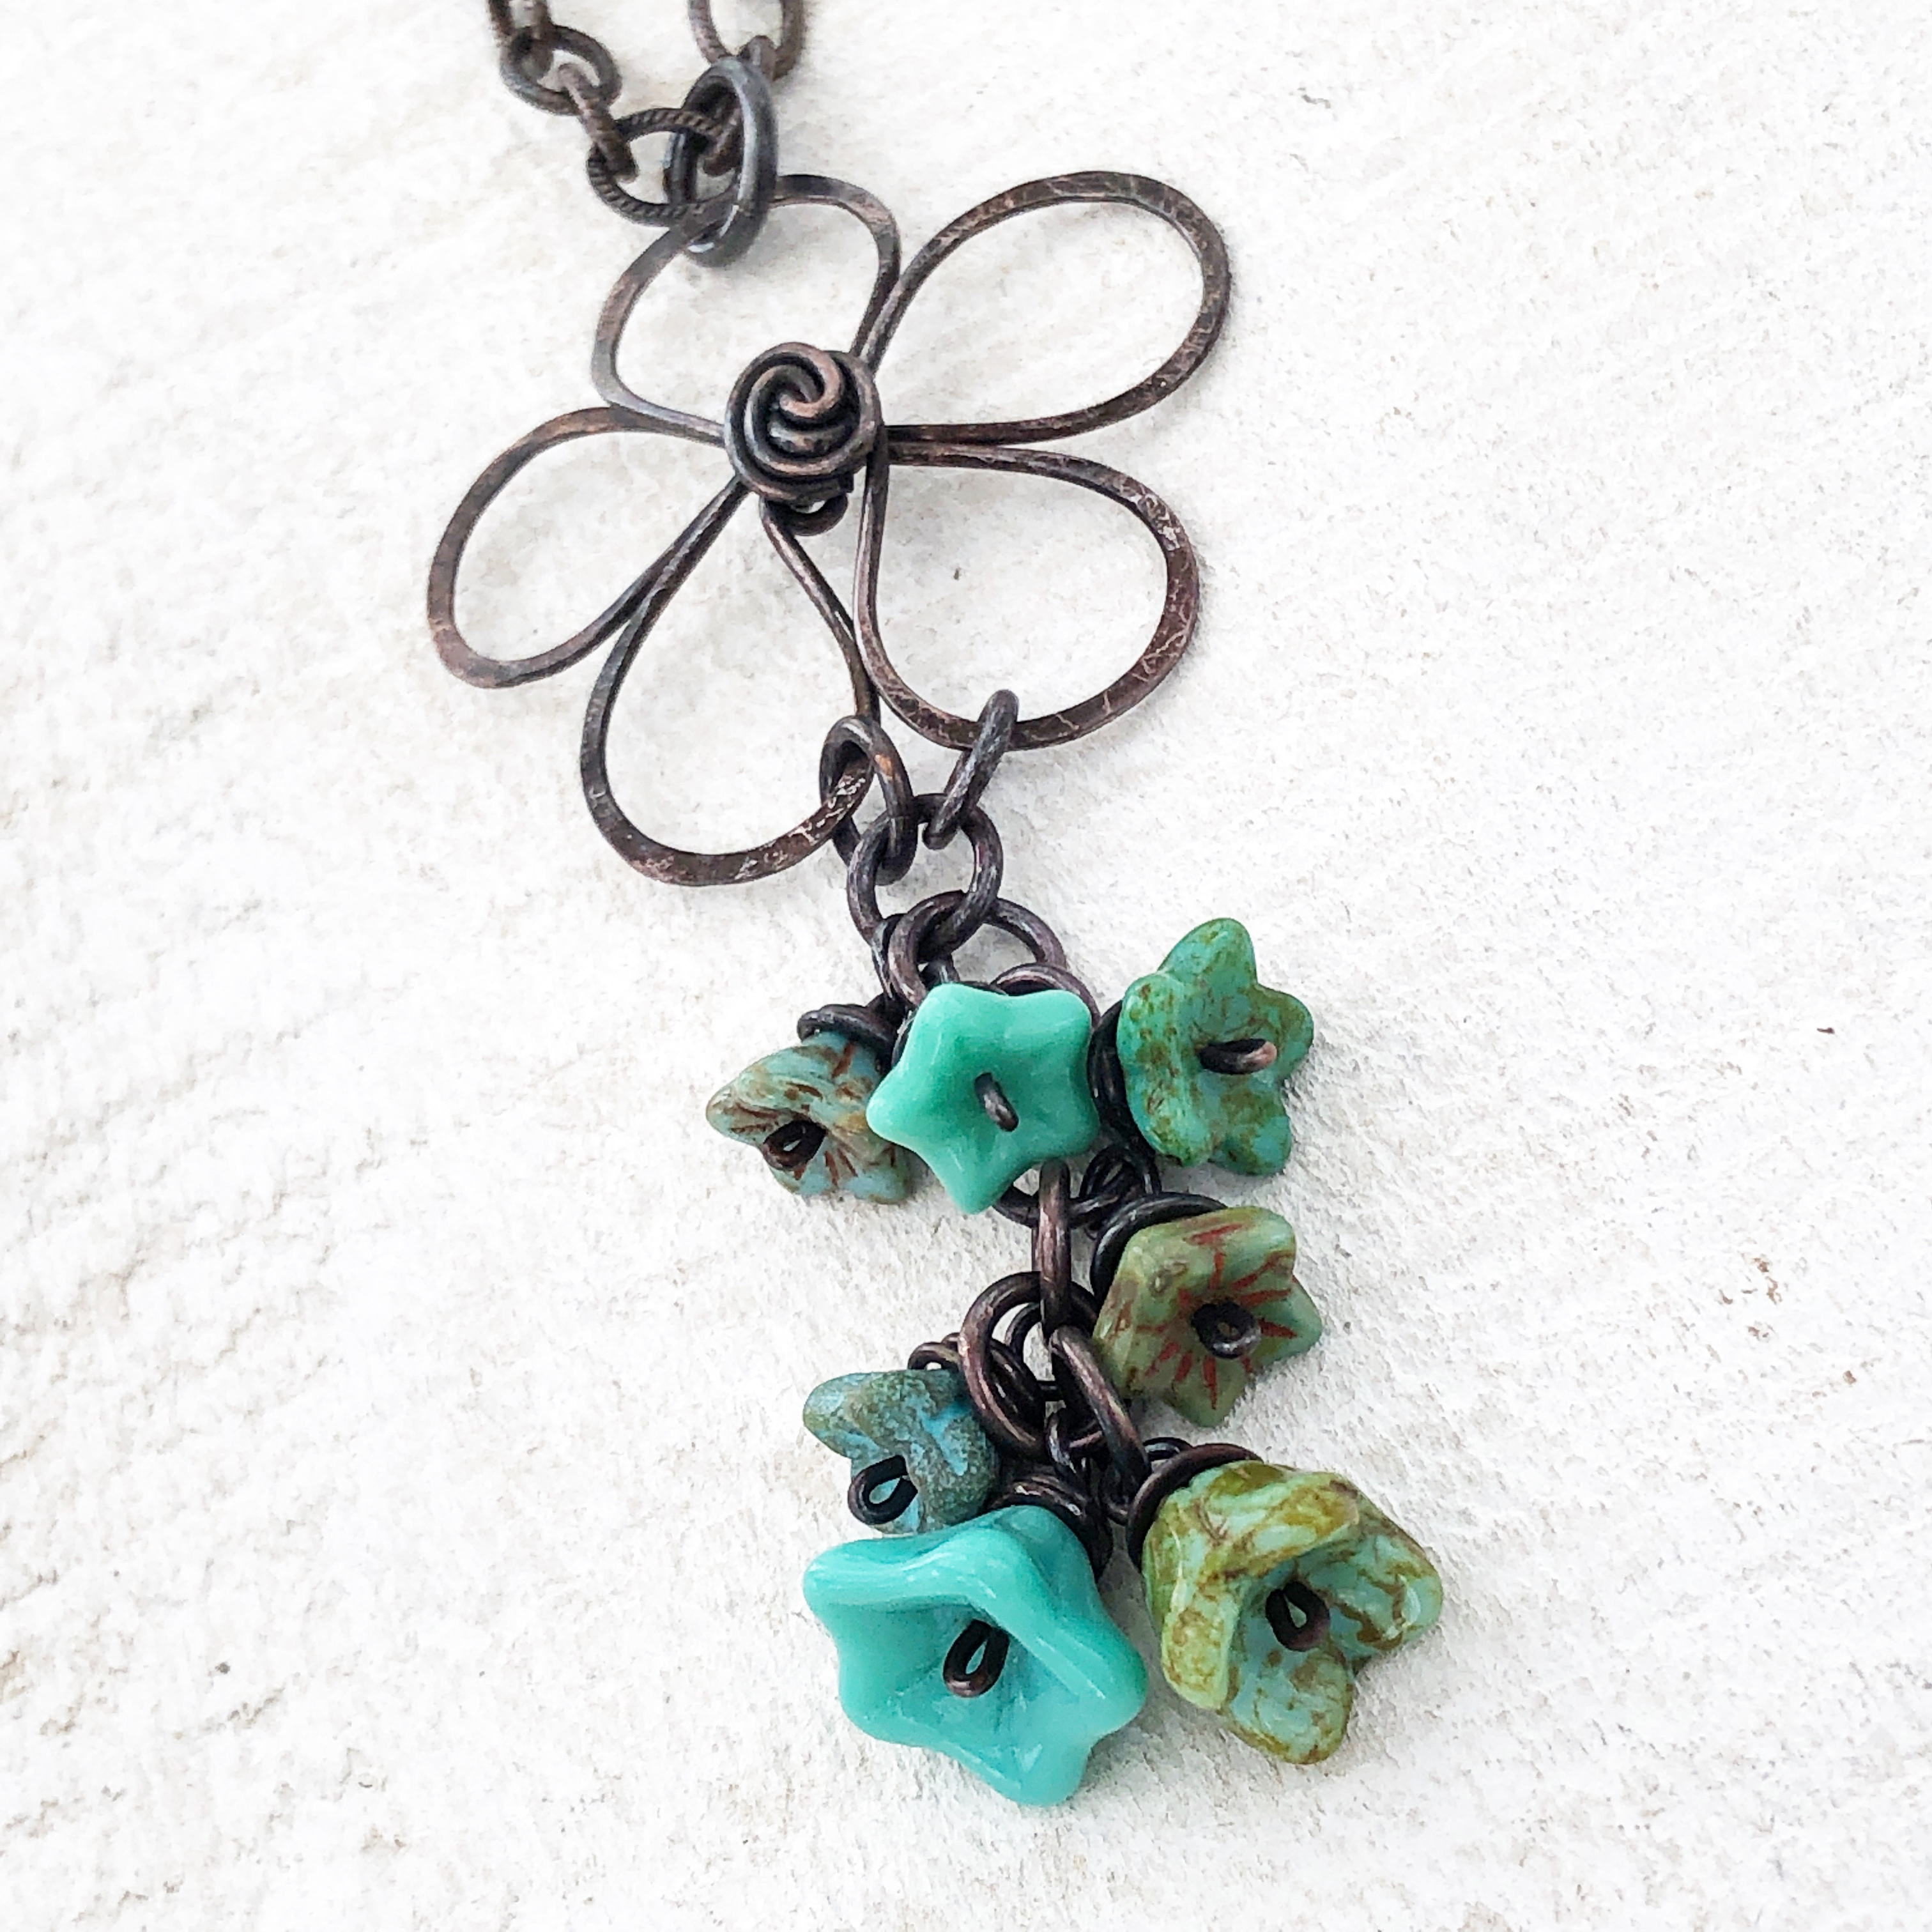 Copper wirework flower with handwrapped turquoise Czech glass beads